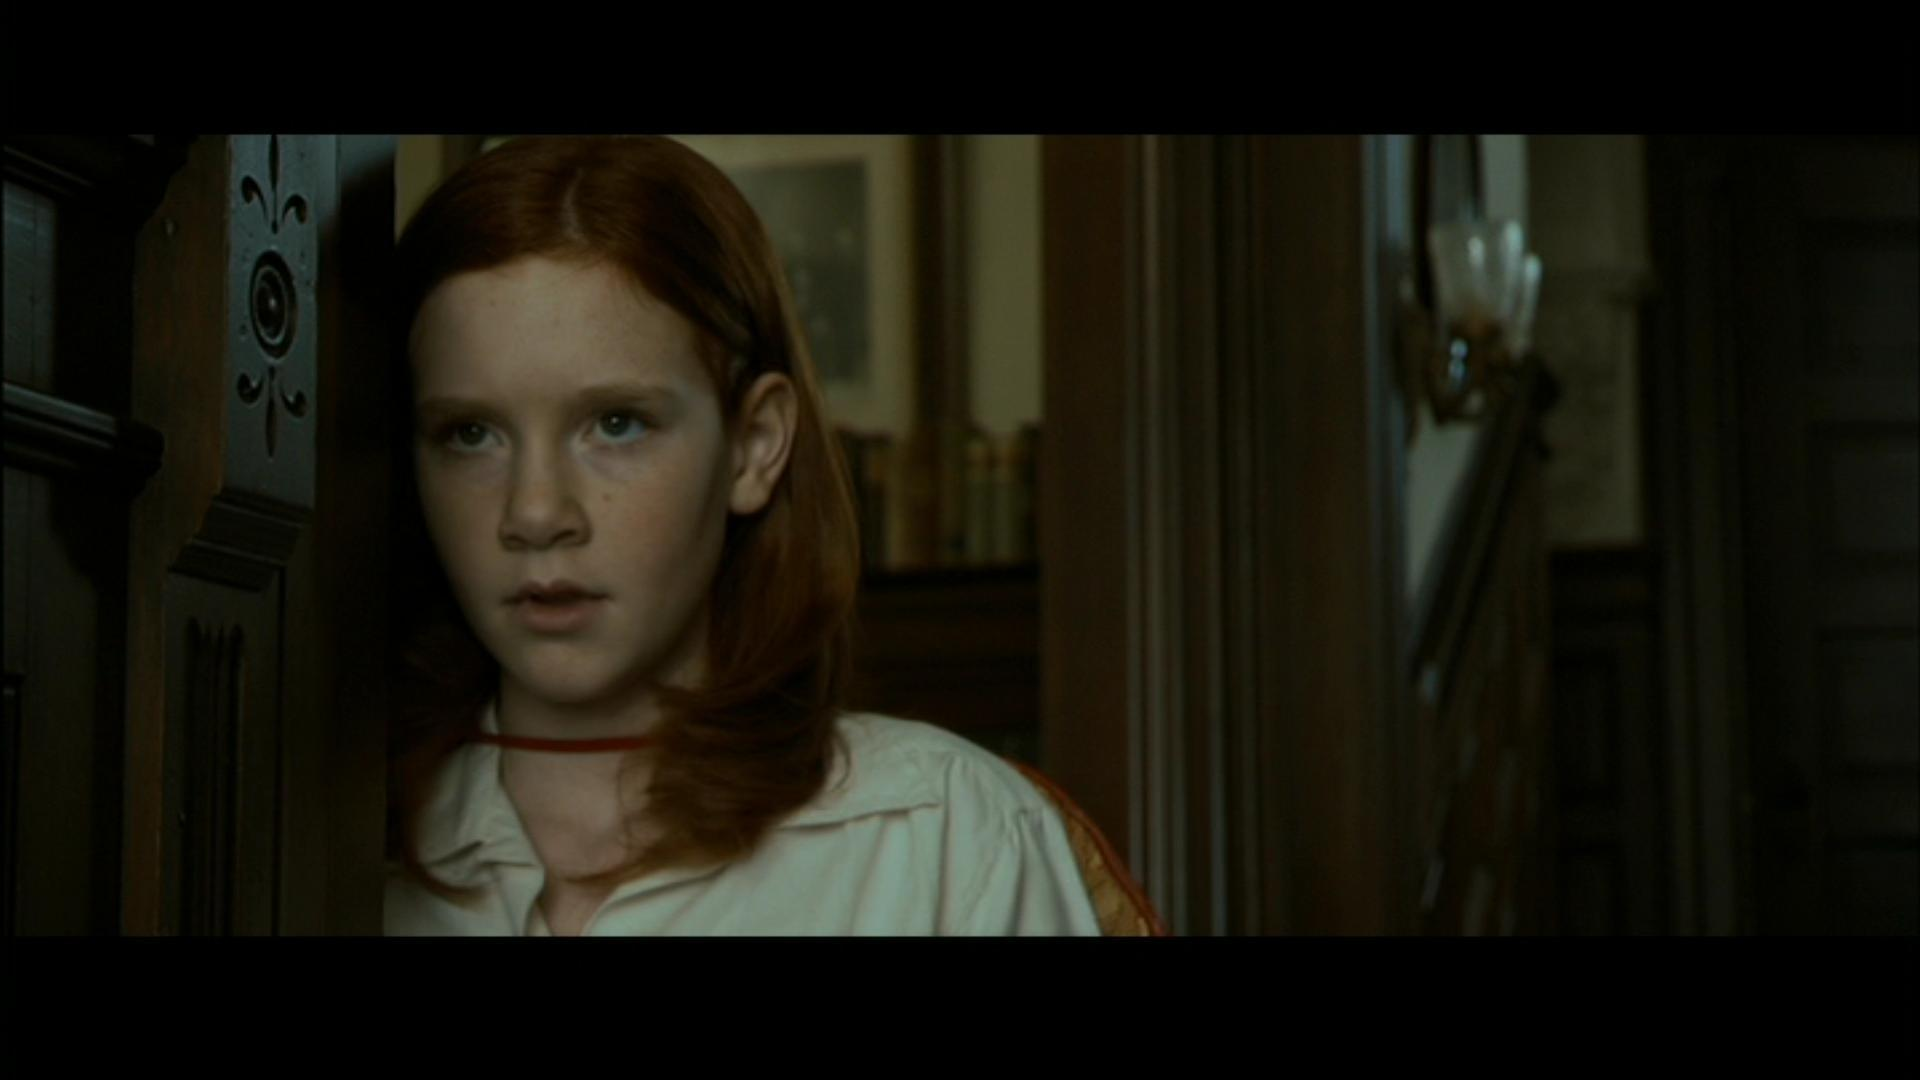 curious case of benjamin button David fincher's the curious case of benjamin button, an adaptation of f scott fitzgerald's story, re-teams the director with brad pitt, who takes on the title role.